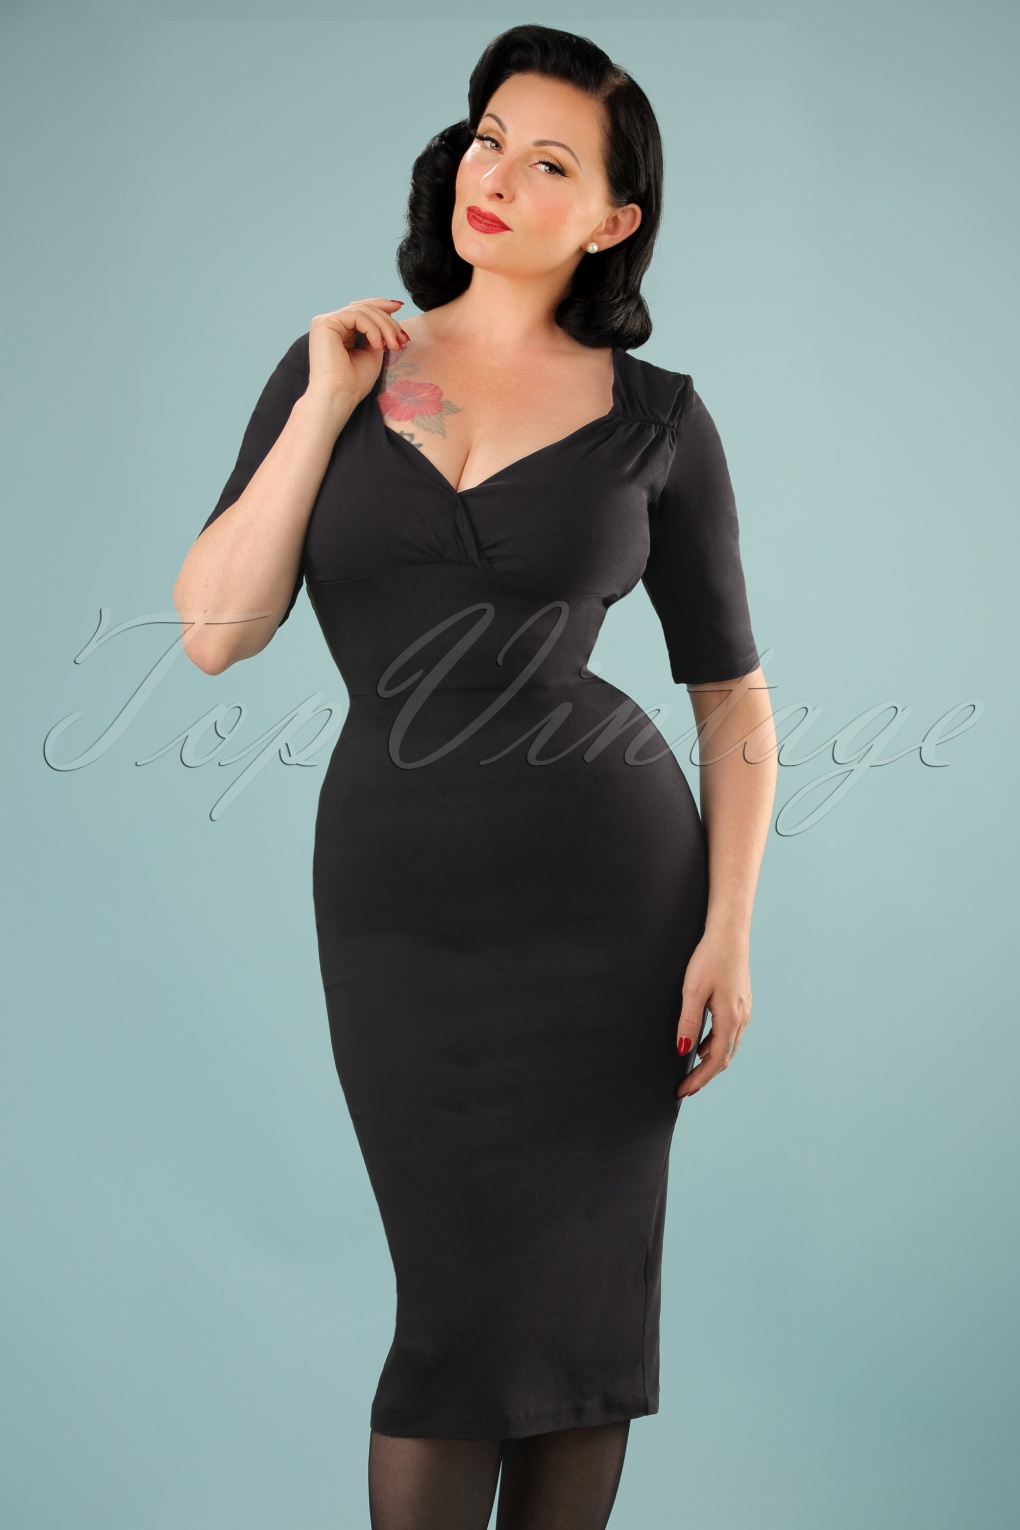 500 Vintage Style Dresses for Sale | Vintage Inspired Dresses 50s Trixie Doll Pencil Dress in Black £47.90 AT vintagedancer.com